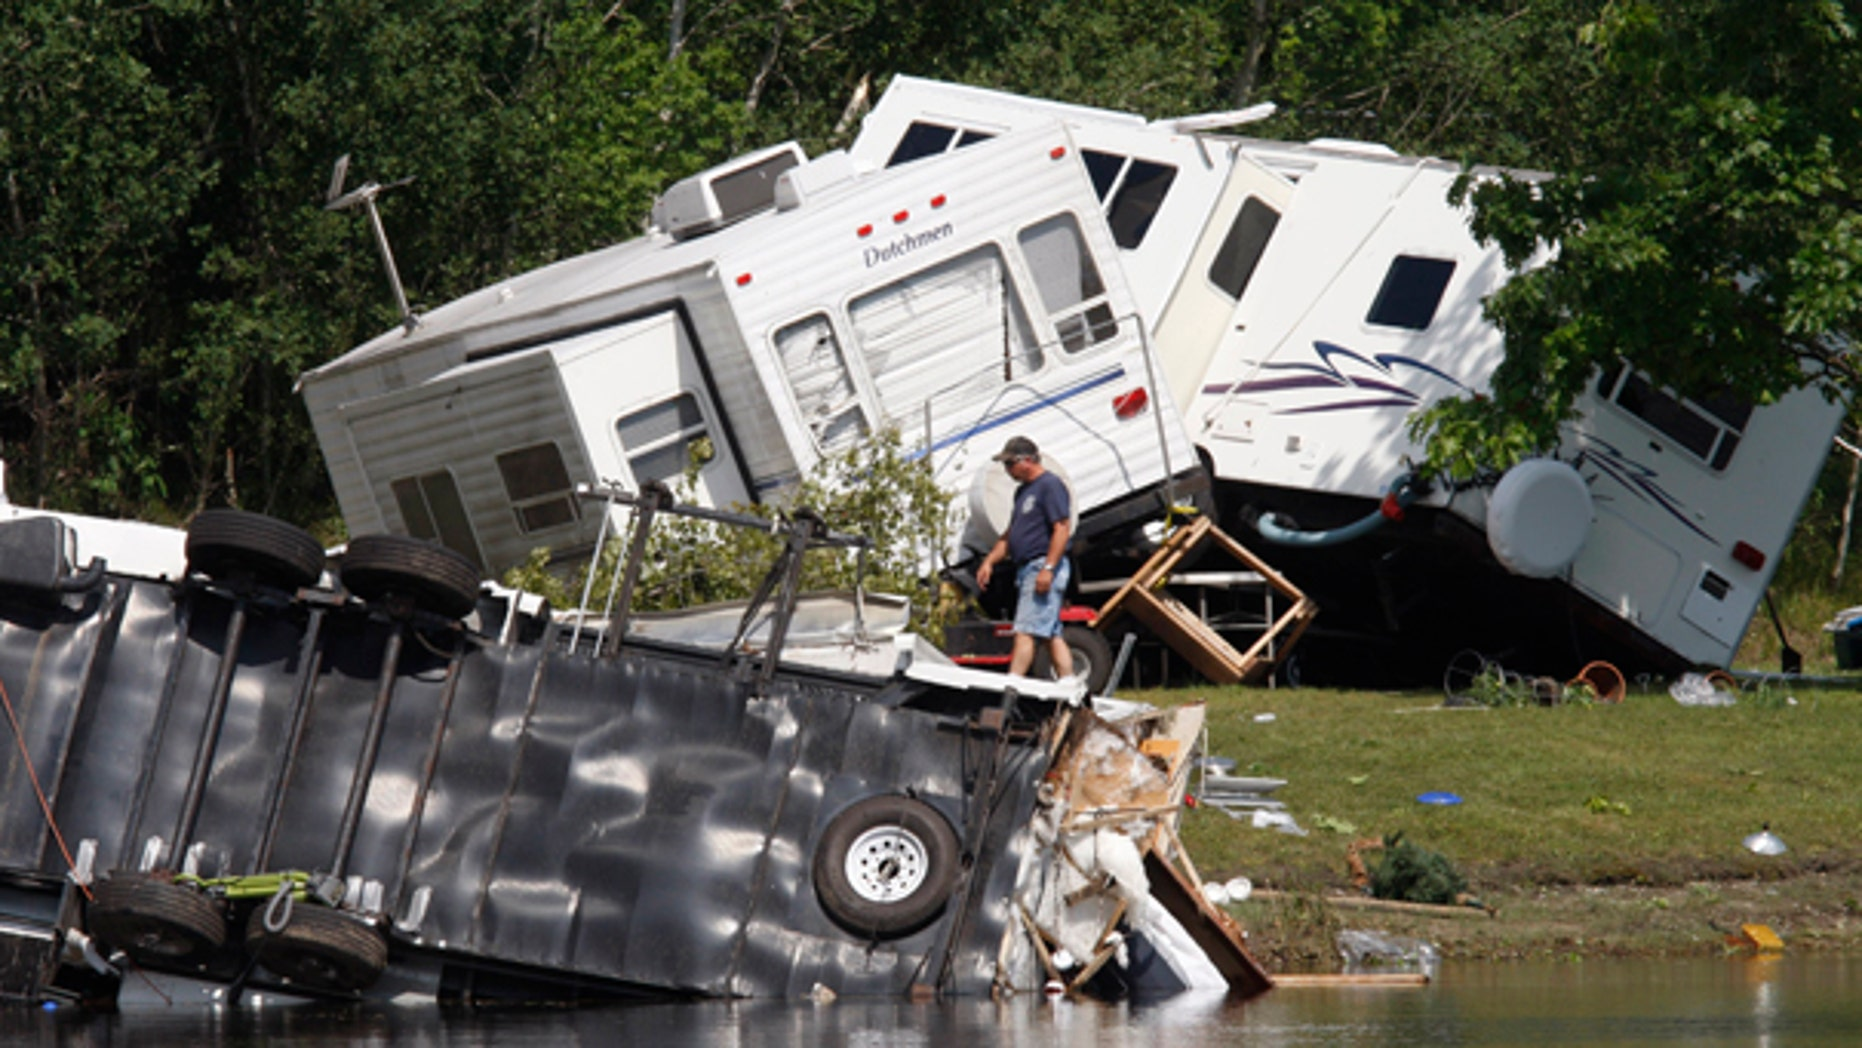 June 28: Overturned trailers are shown at the Fort Trodd Family Campground in Clyde Township, Mich. (AP)